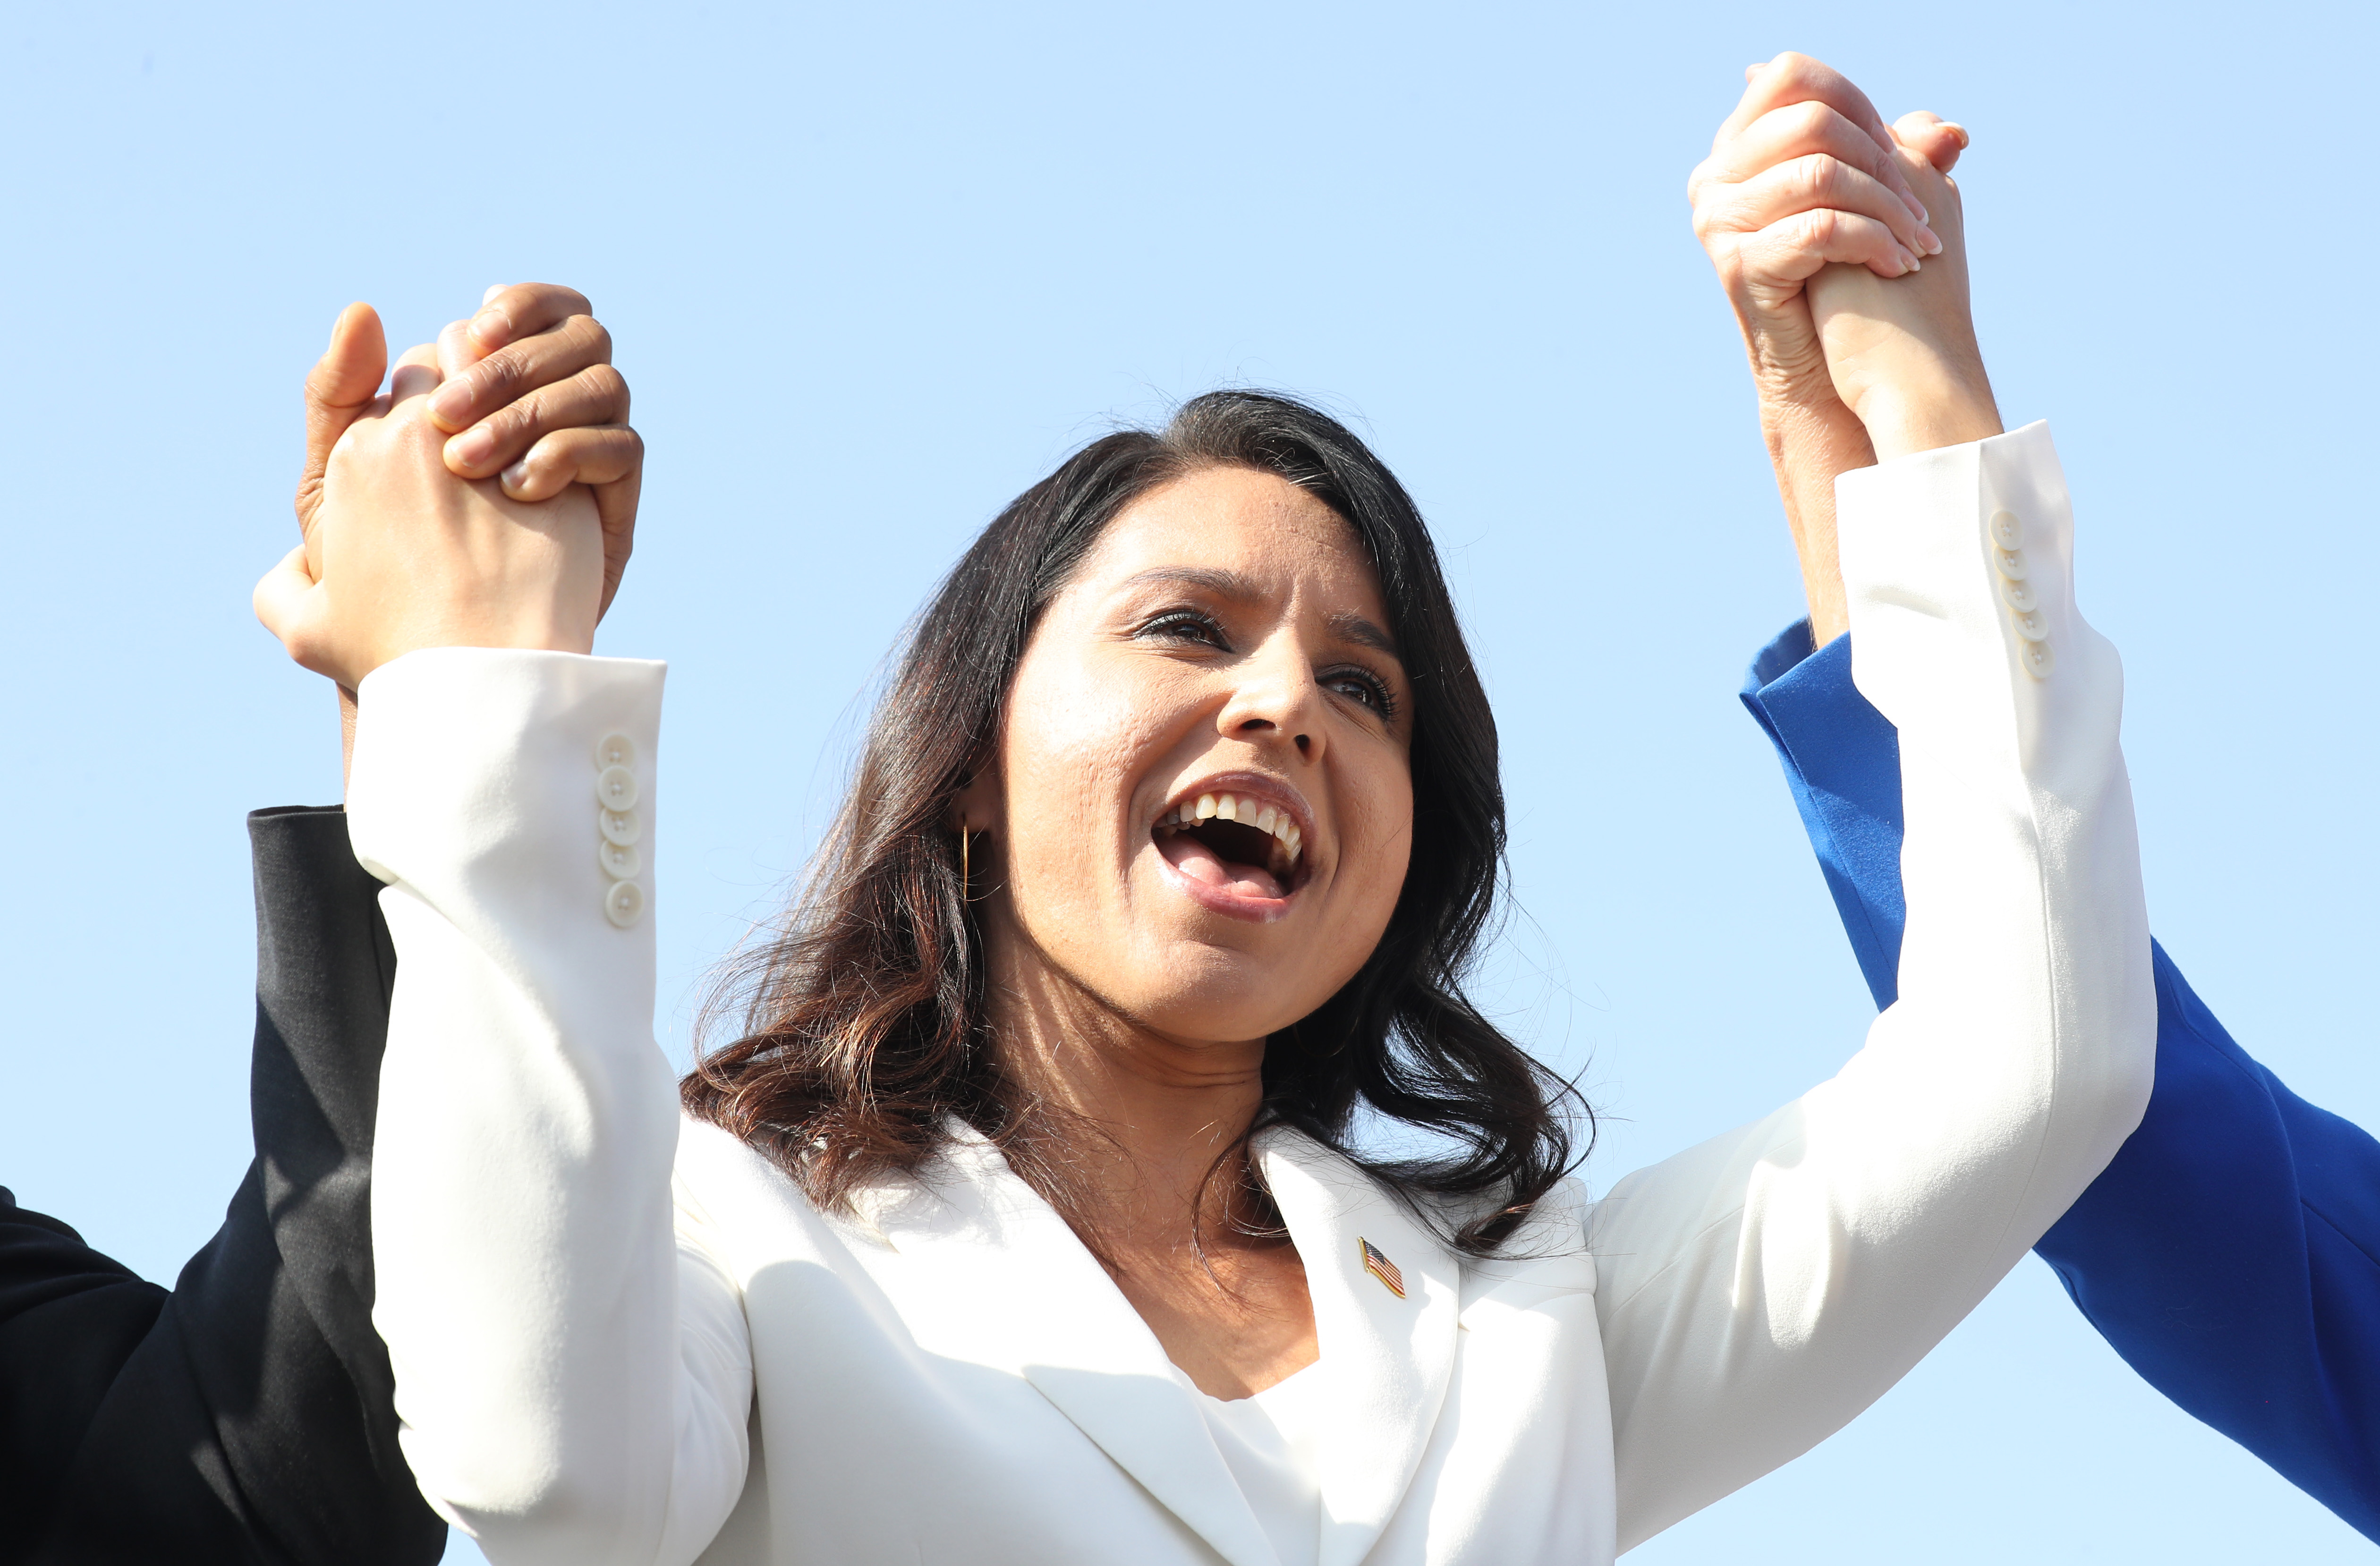 Democratic presidential candidate U.S. Rep. Tulsi Gabbard (D-HI) sings during the inaugural Veterans Day L.A. event held outside of the Los Angeles Memorial Coliseum on November 11, 2019 in Los Angeles, California. (Mario Tama/Getty Images)